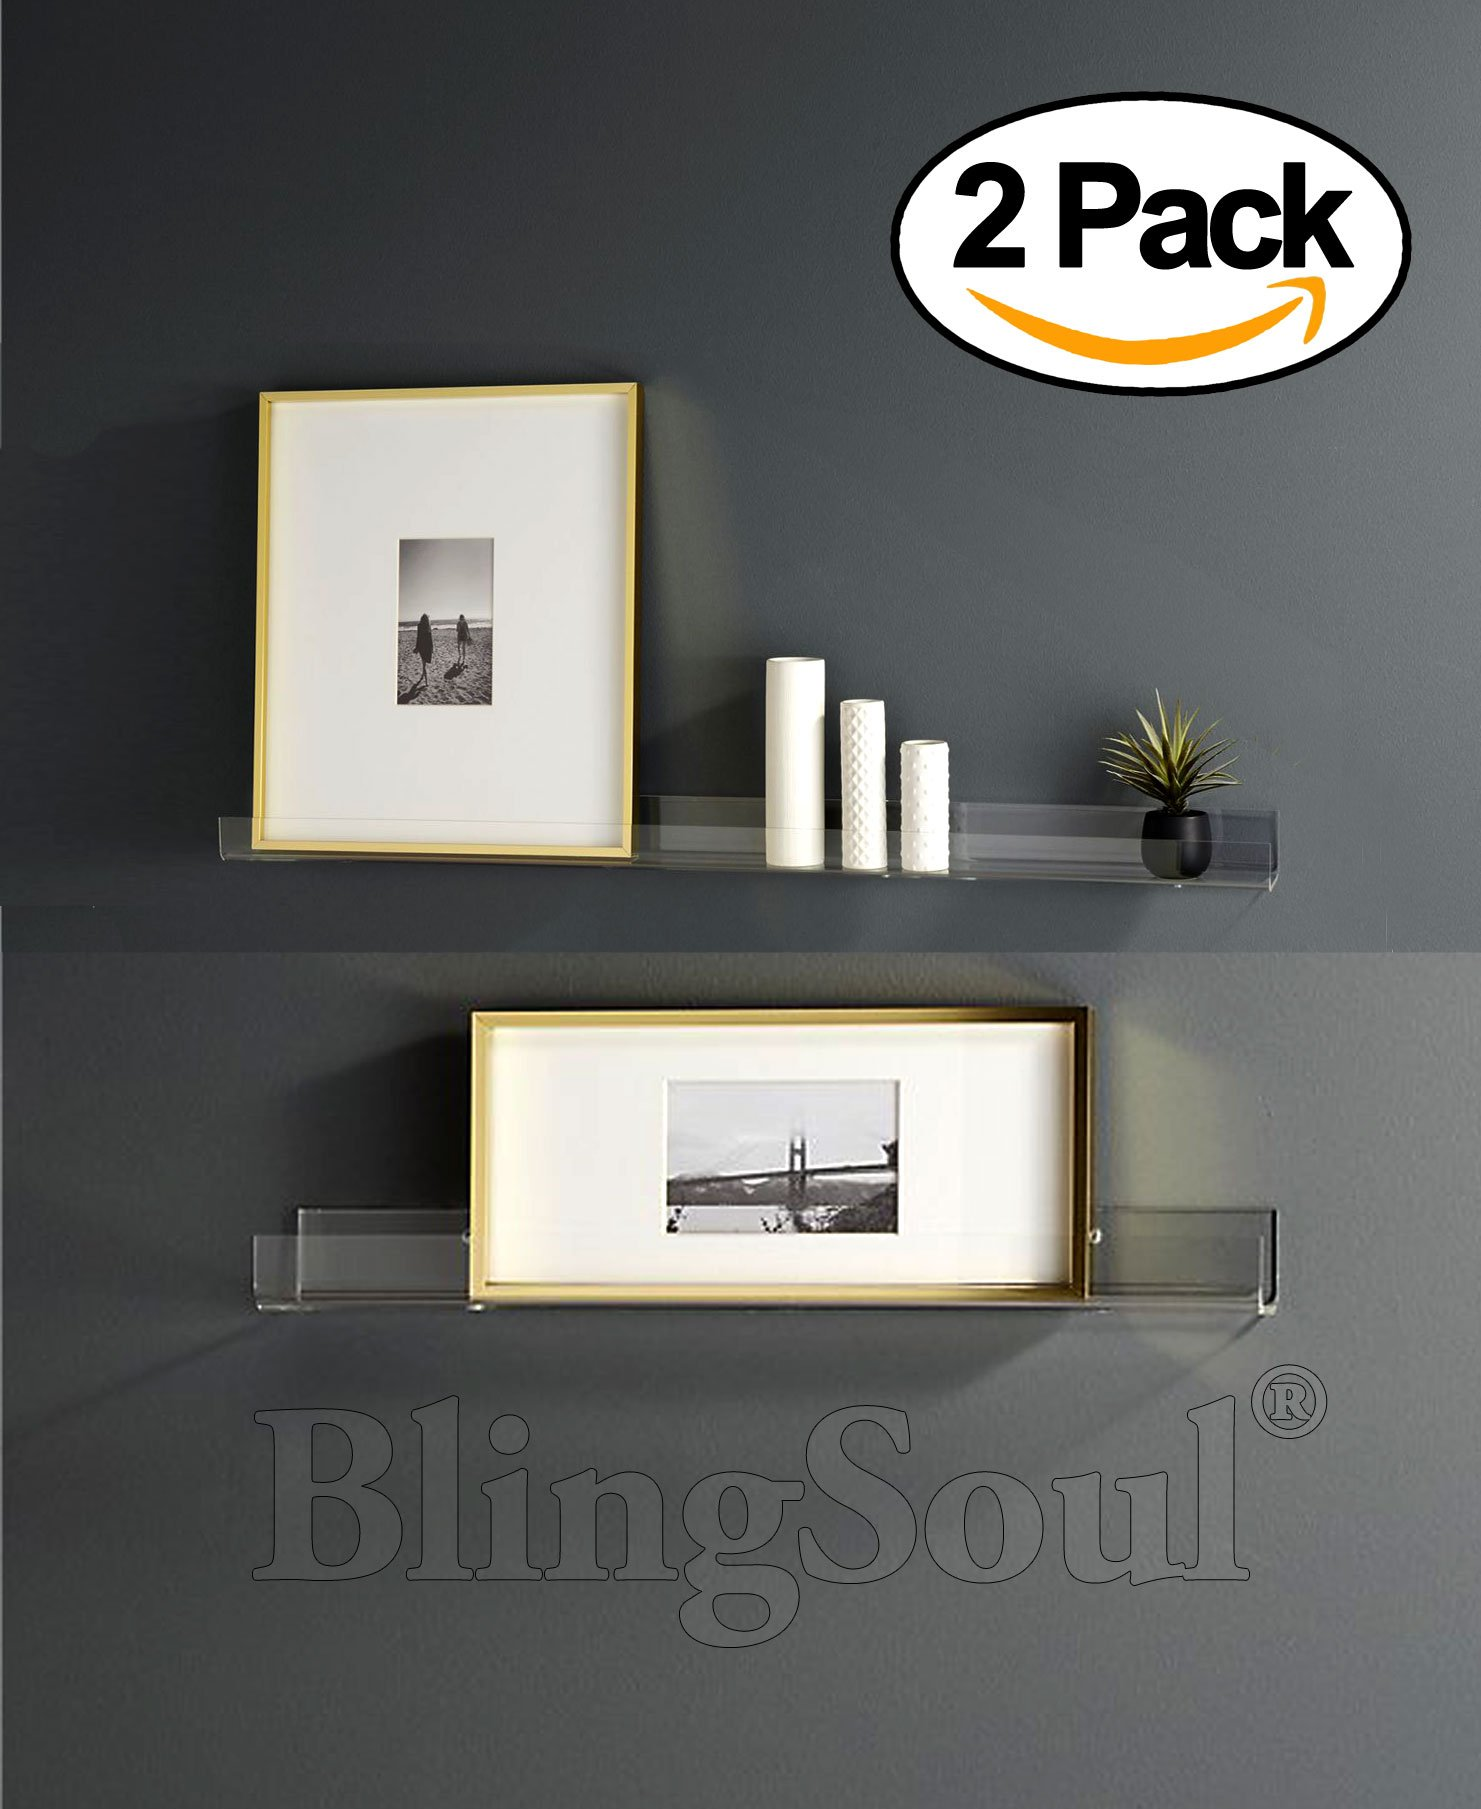 Fine Details About Clear Floating Shelves 2 Pack 15 Inches Non Wooden Wall Decor Hanging Bookshelf Download Free Architecture Designs Embacsunscenecom